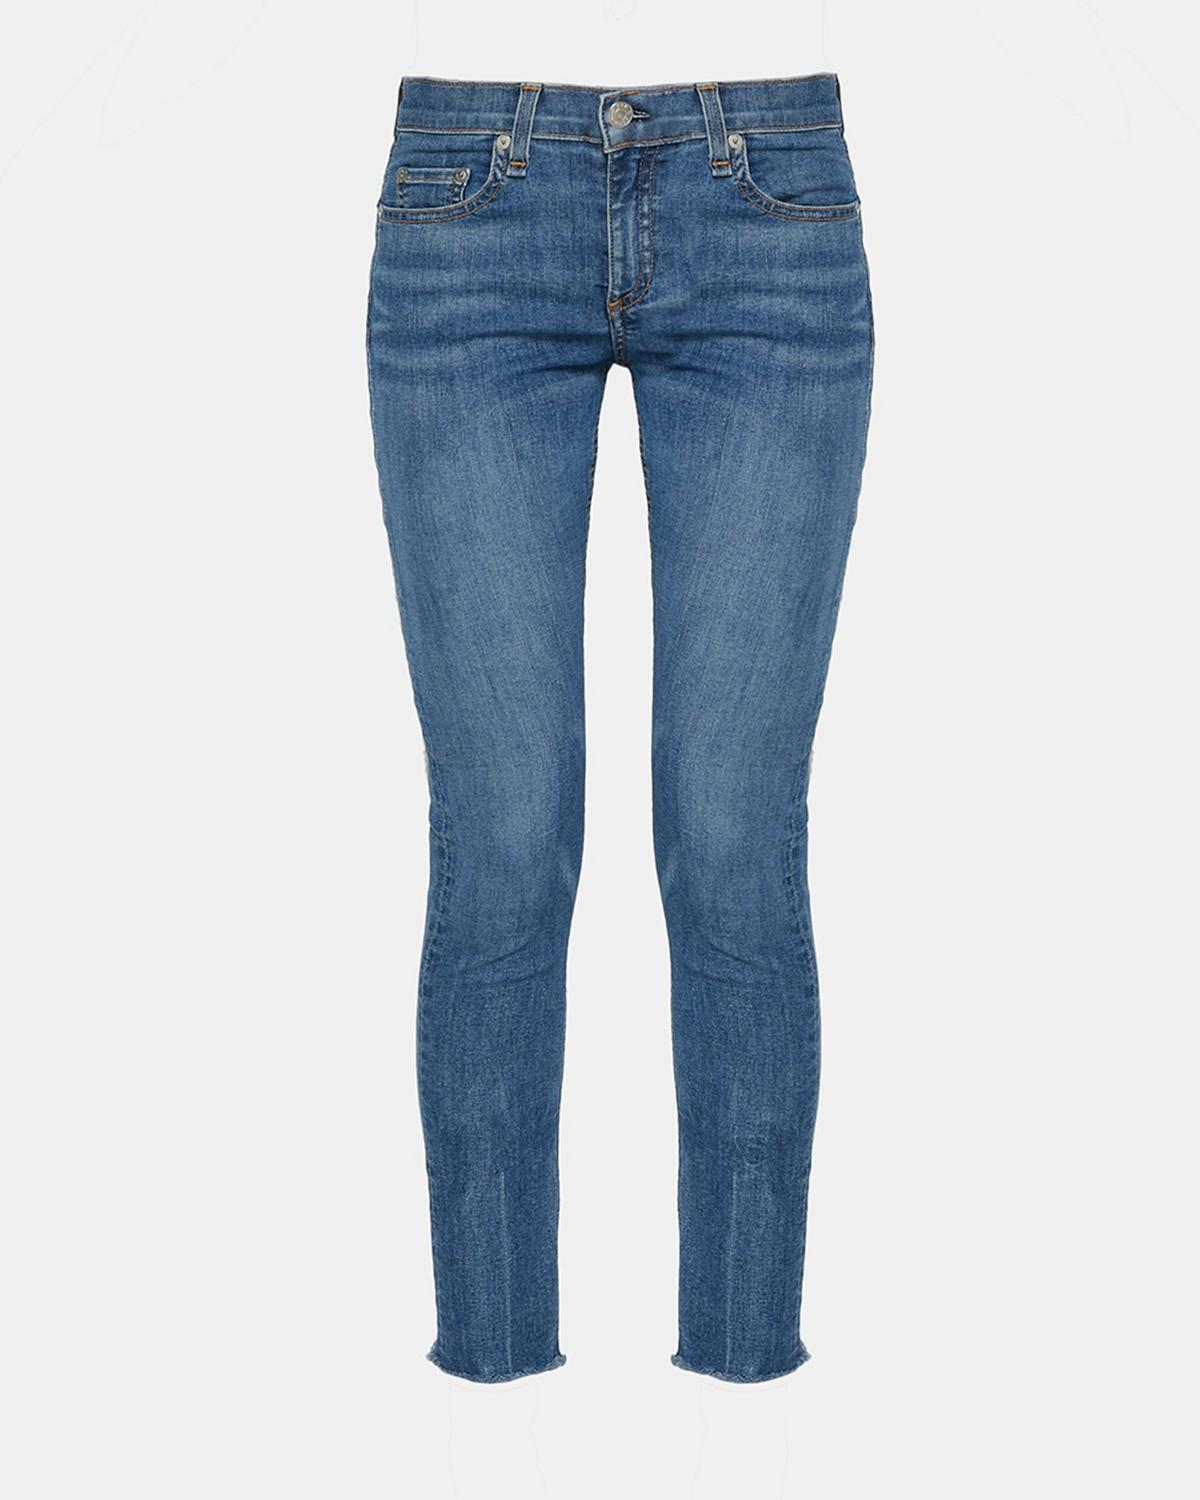 Looking For For Sale classic skinny jeans - Blue Rag & Bone Cheap Sale Hot Sale Shopping Online With Mastercard V5wcd